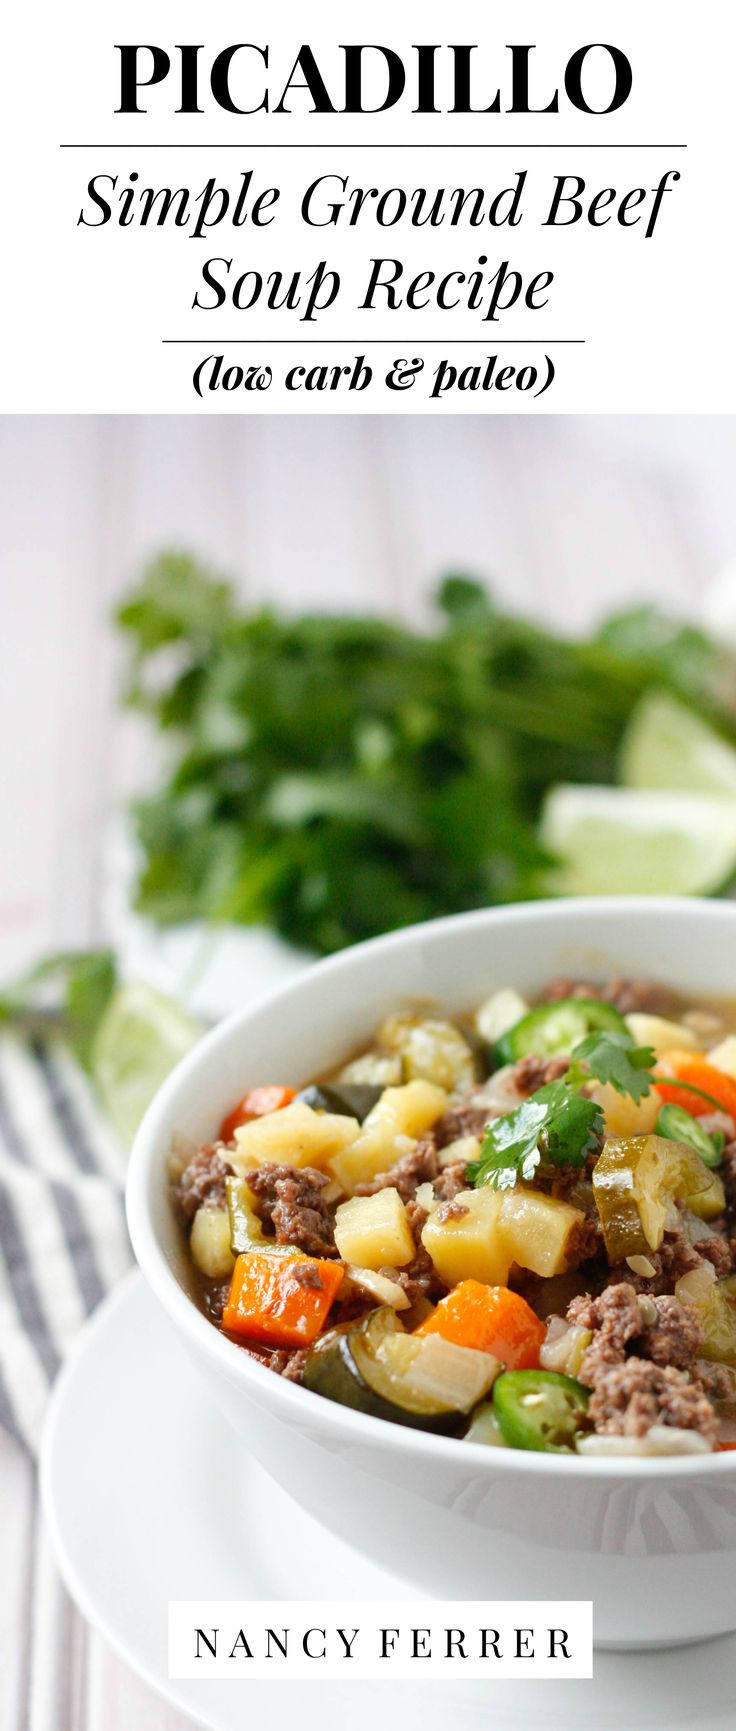 Low Carb Ground Beef Soup  Picadillo